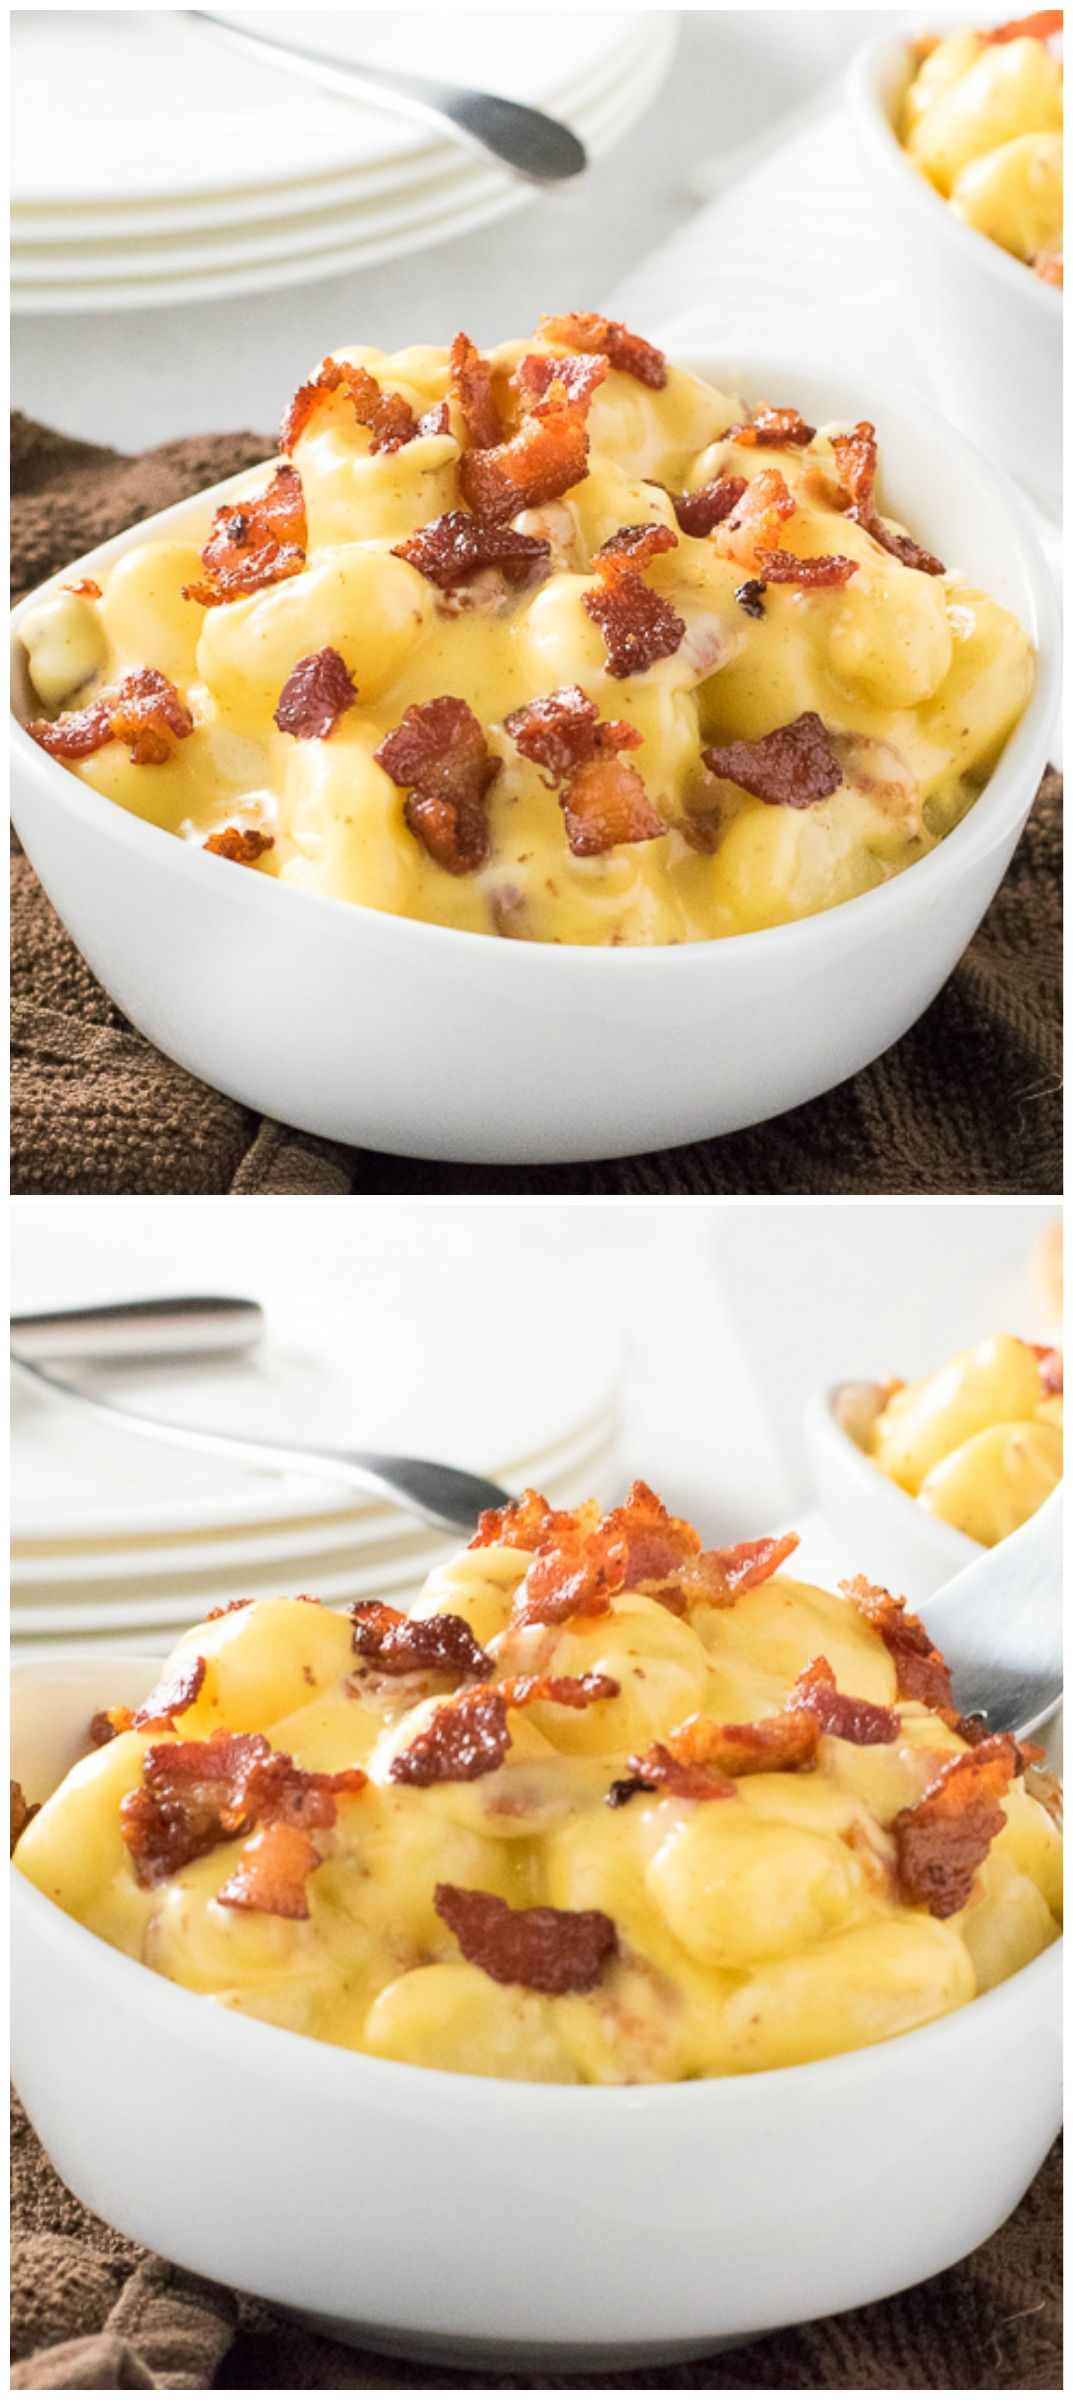 Gnocchi Mac and Cheese with Bacon - Make this for dinner and your family will go nuts!!   Food ...